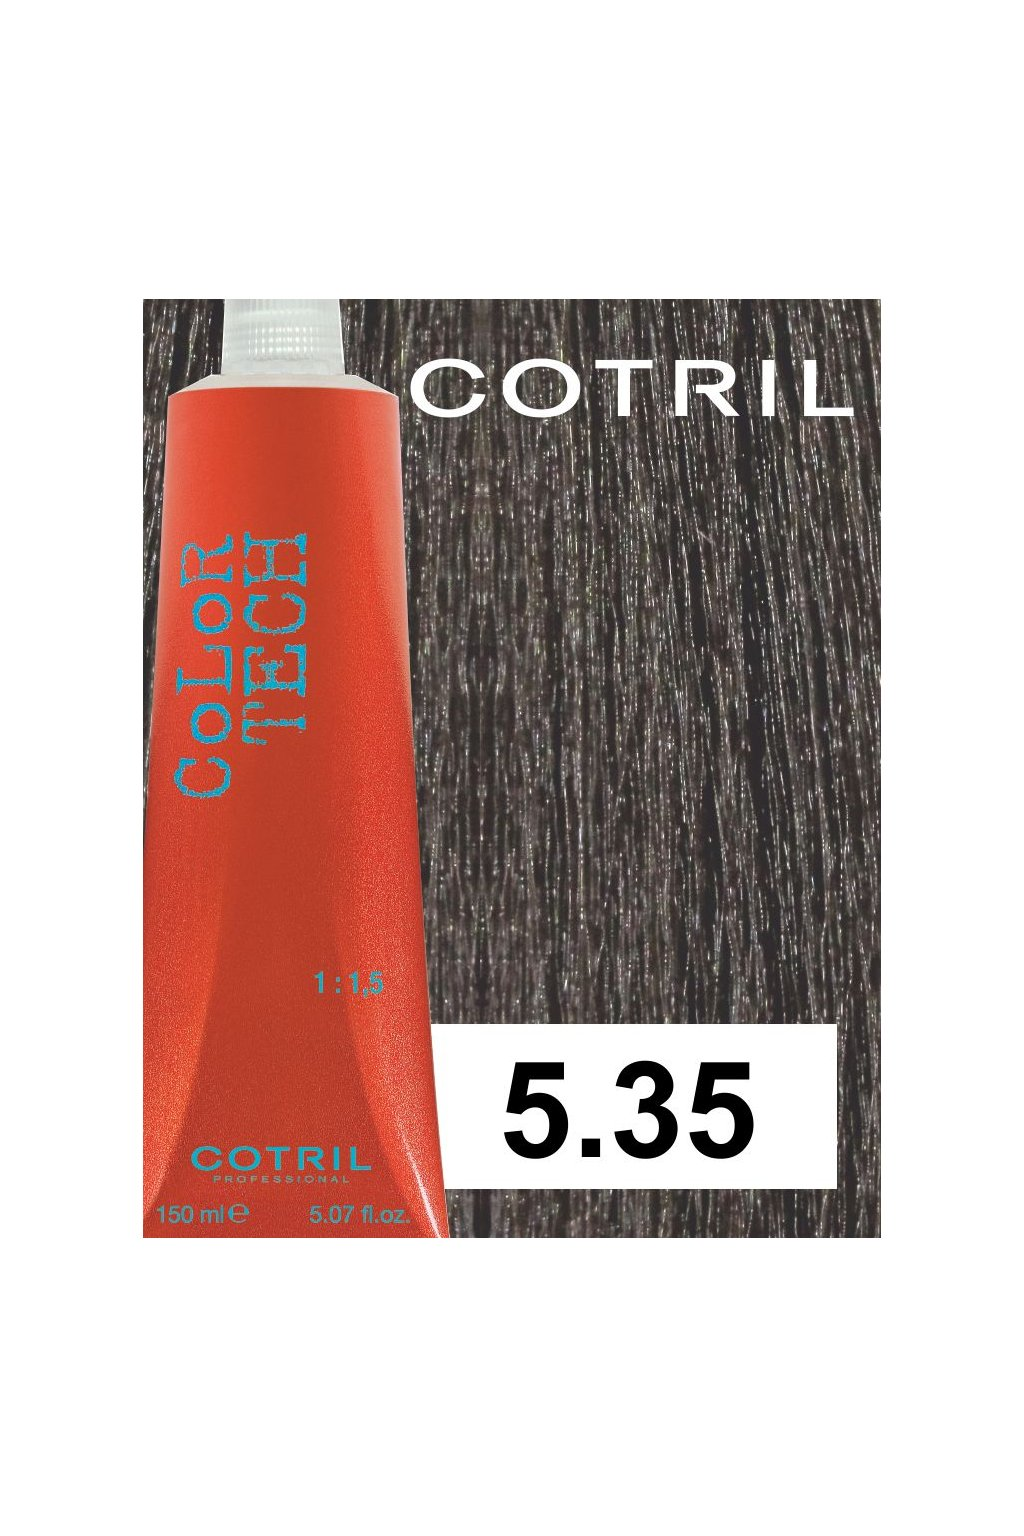 5 35 ct cotril